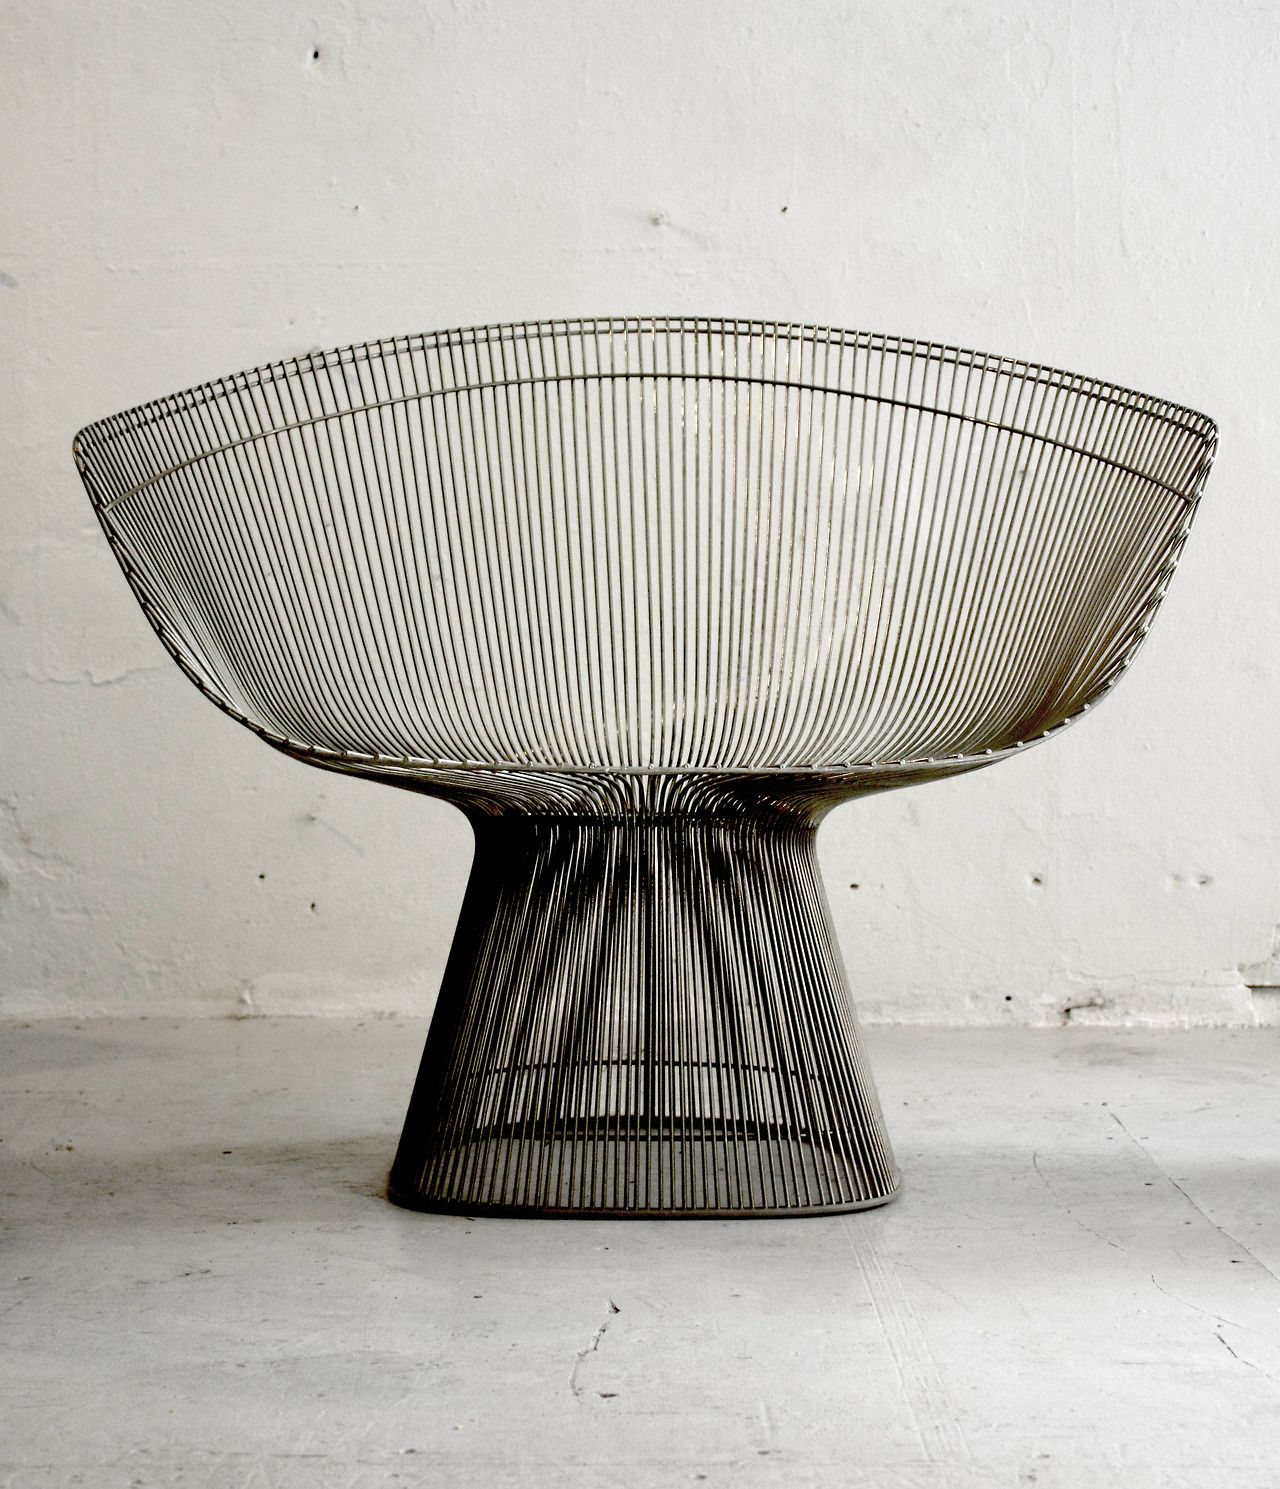 Fauteuil Platner, Designed By Warren Platner For Knoll, 1966 :::